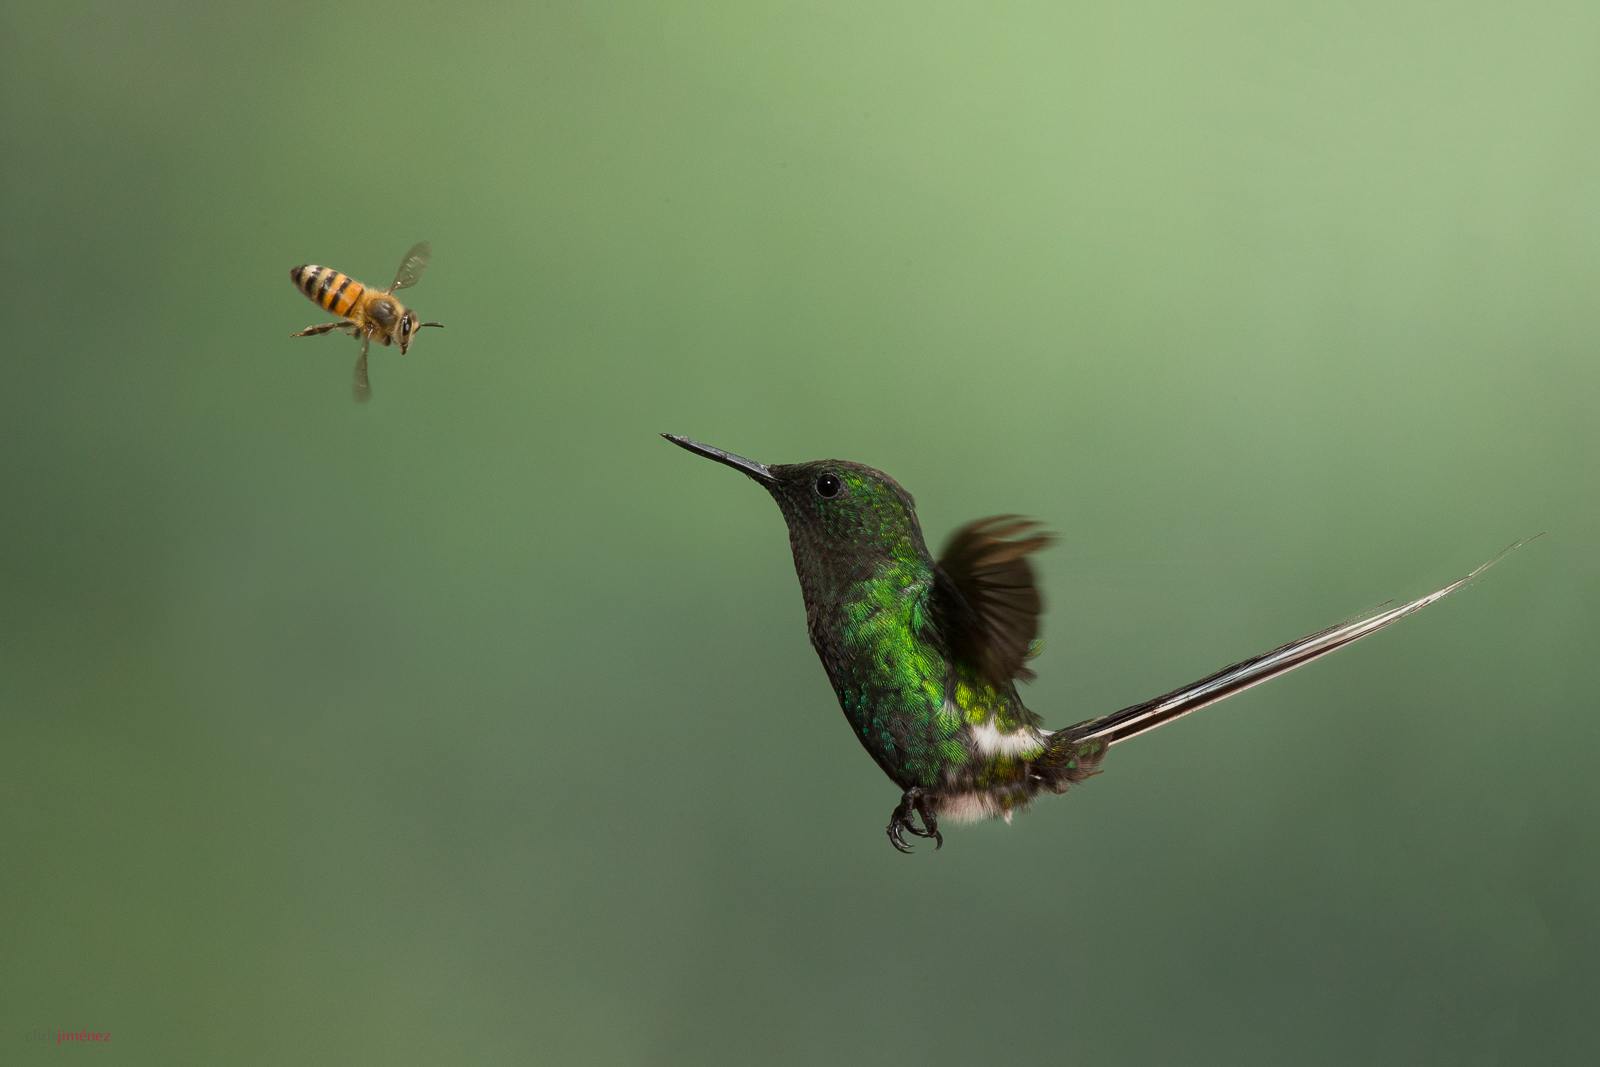 Green Thorntail (Discosura conversii) male in flight fighting bee at the highland of Costa Rica